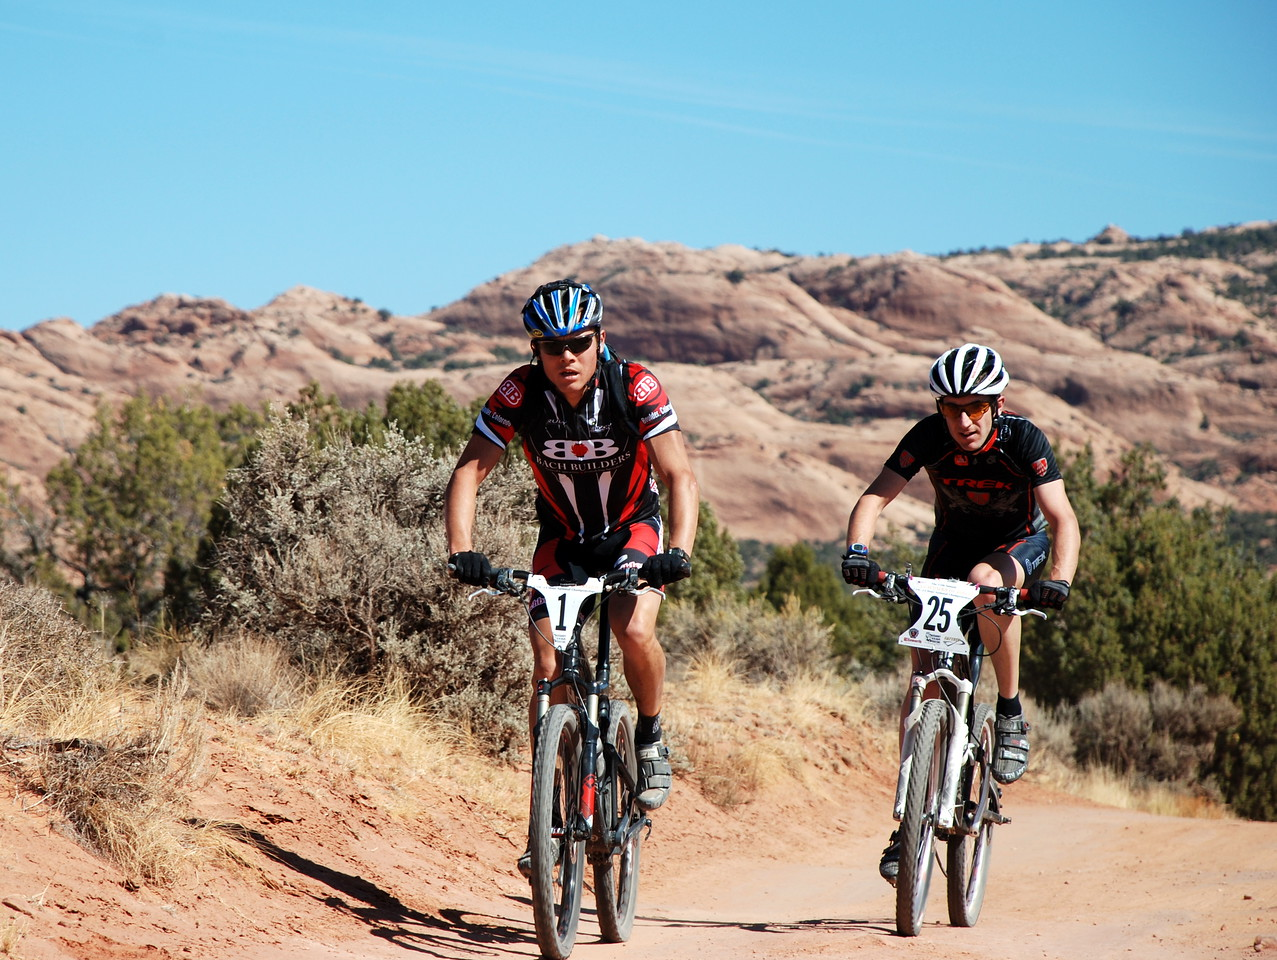 Josh Tostado and Kelly Magelky Leading to Solo Men